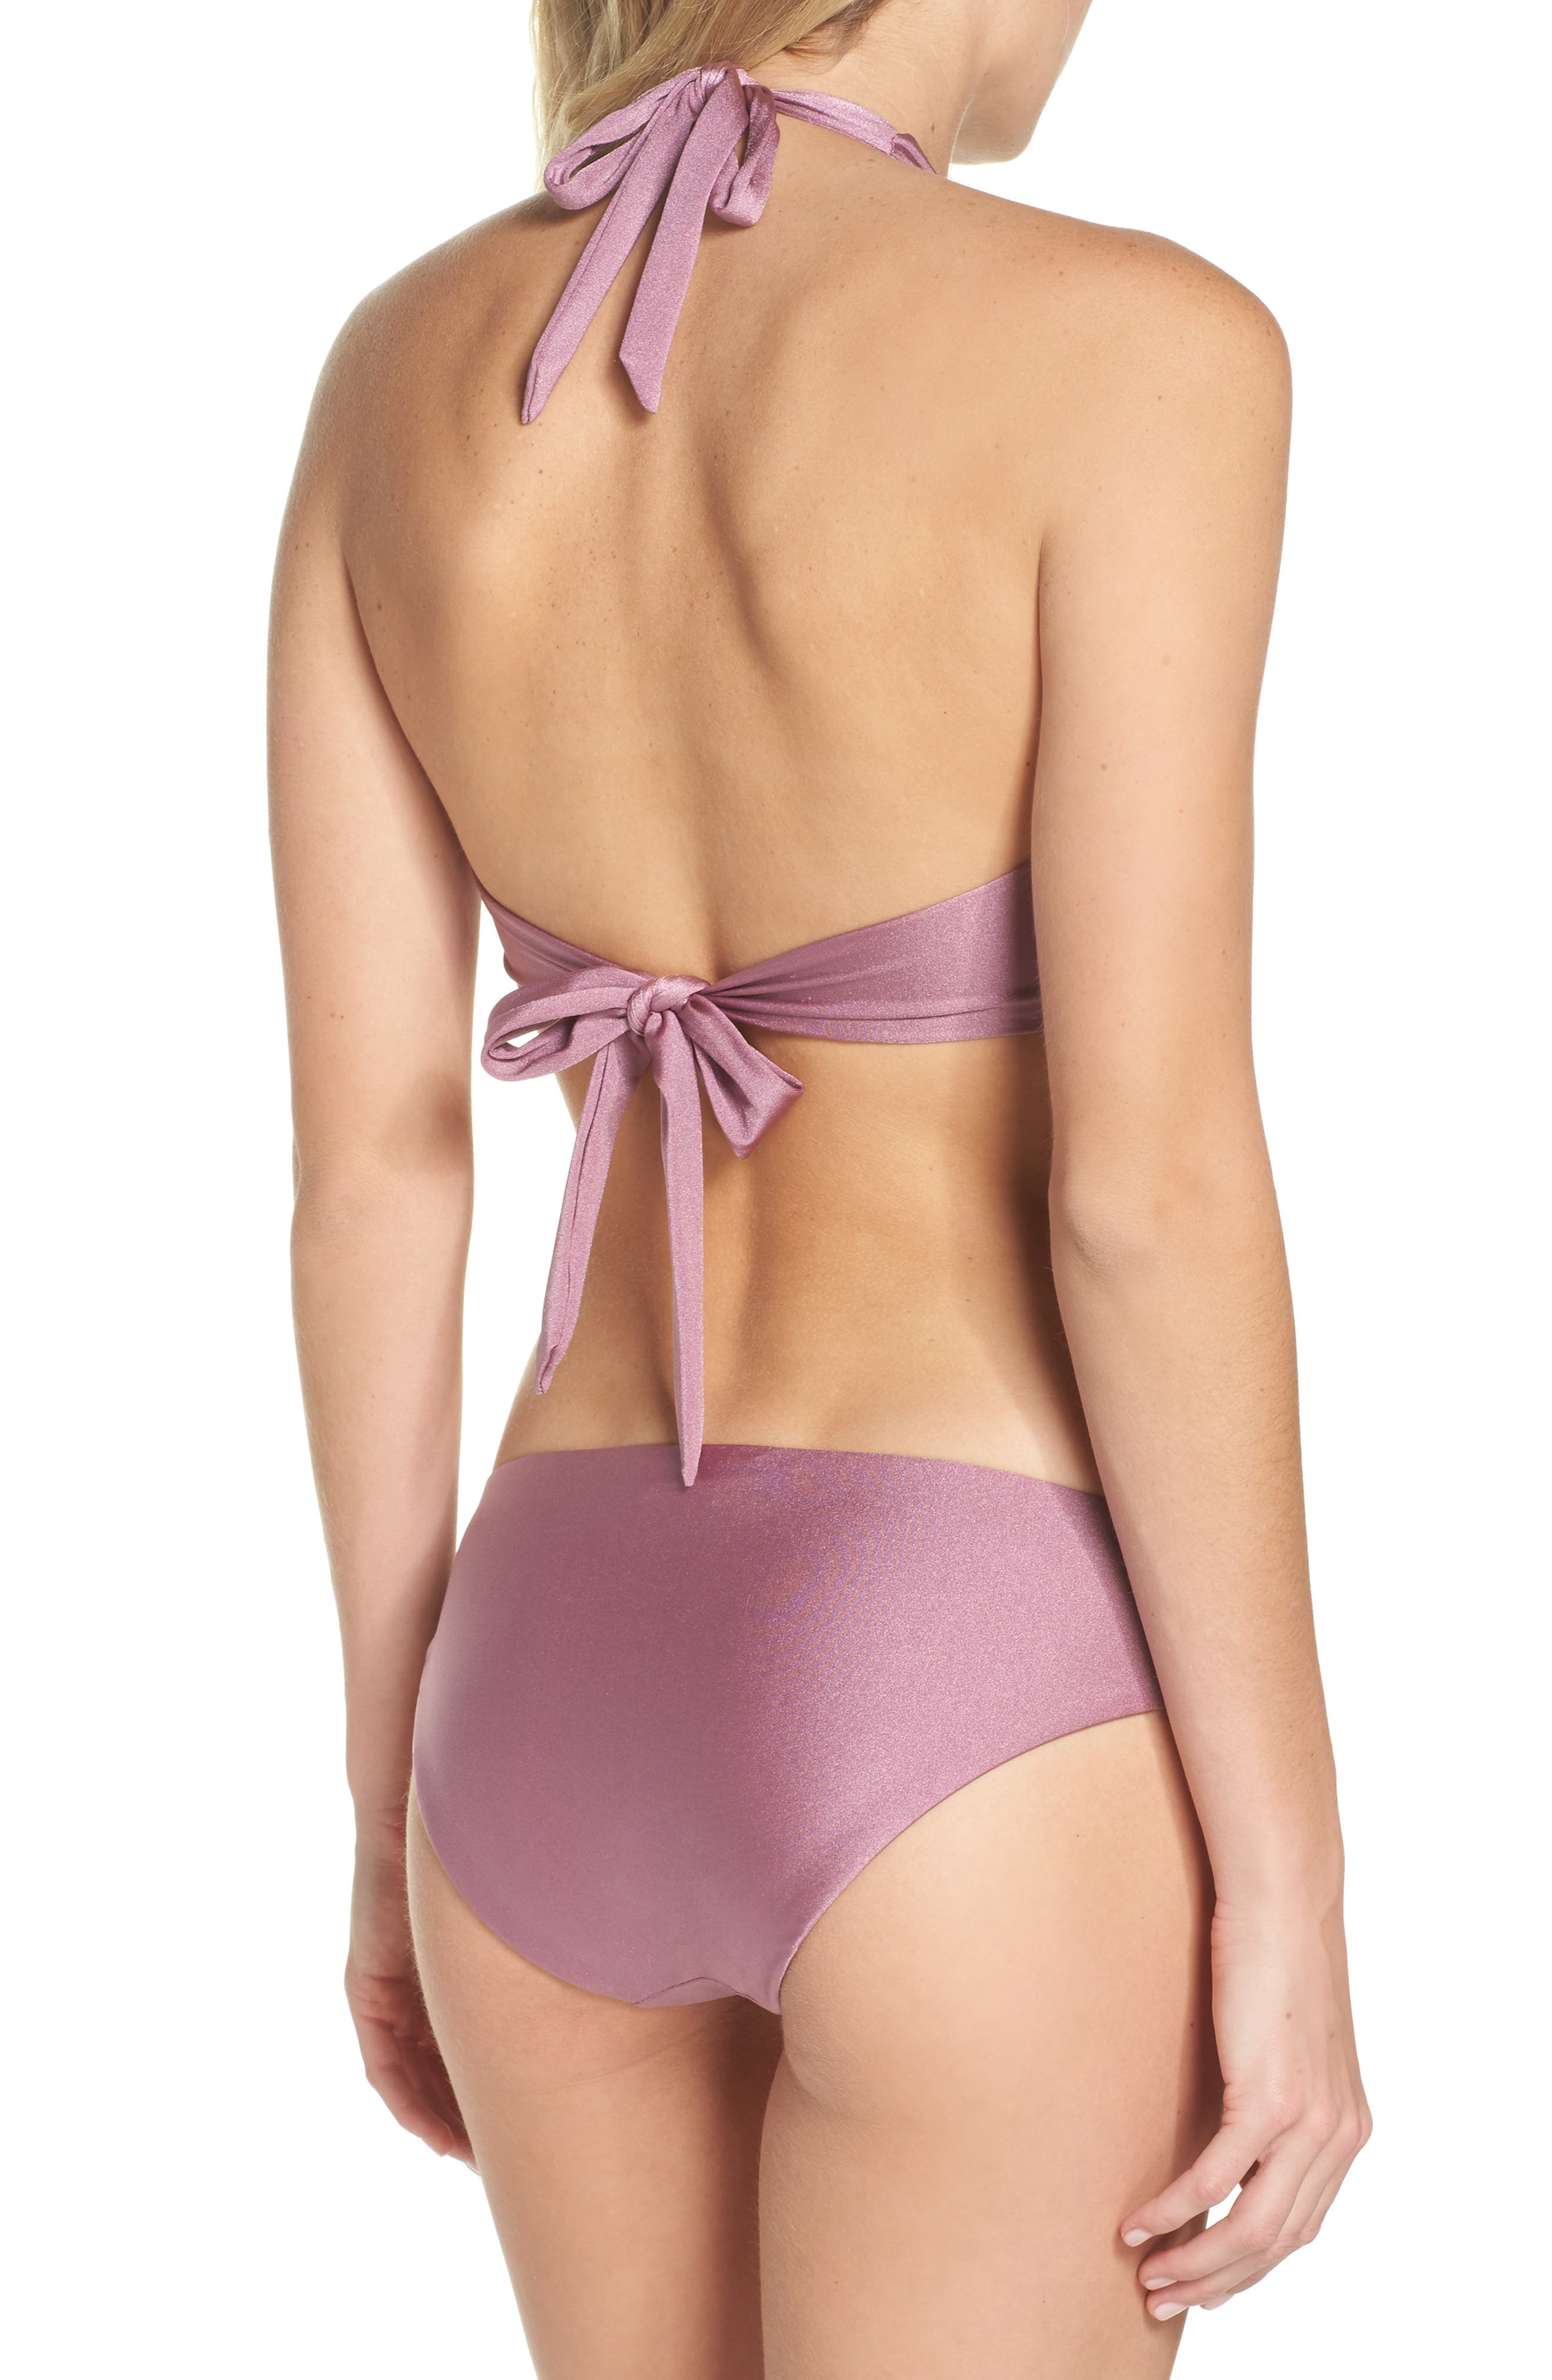 Ballerina Bikini Bottoms,                             Alternate thumbnail 8, color,                             500